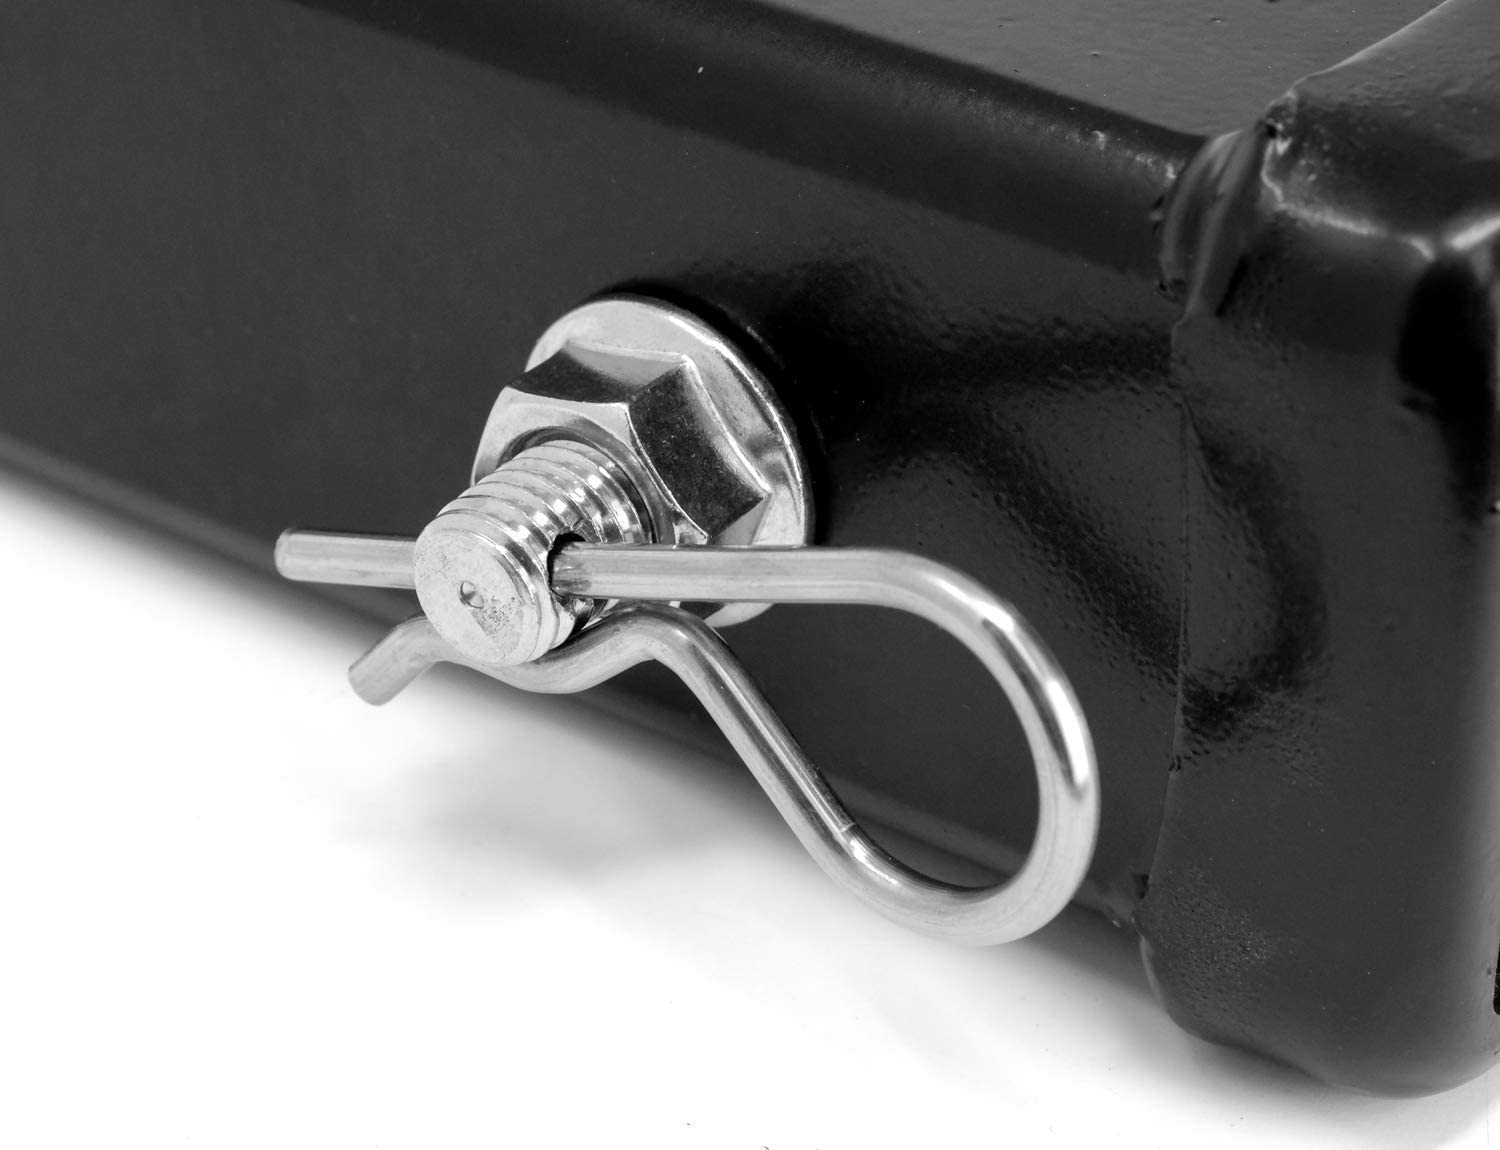 Will Fit 2 receivers LFPartS 100/% Stainless Steel Trailer Hitch Pin Keeper Grip Clip Kit